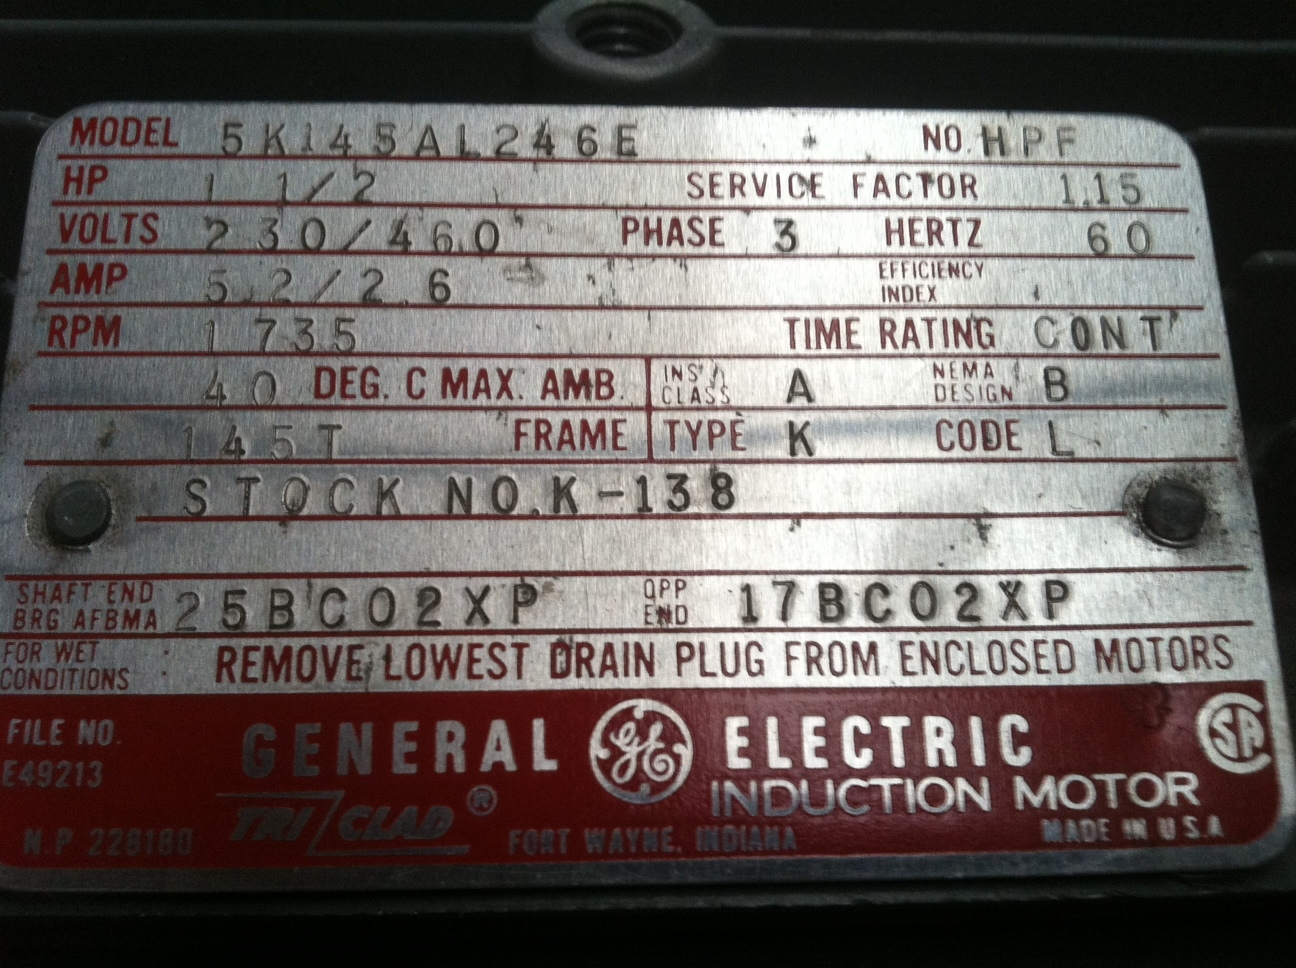 hight resolution of i purchased a ge motor on ebay and it has come with no wiring single phse electric motor nameplate electric motor nameplate marathon electric